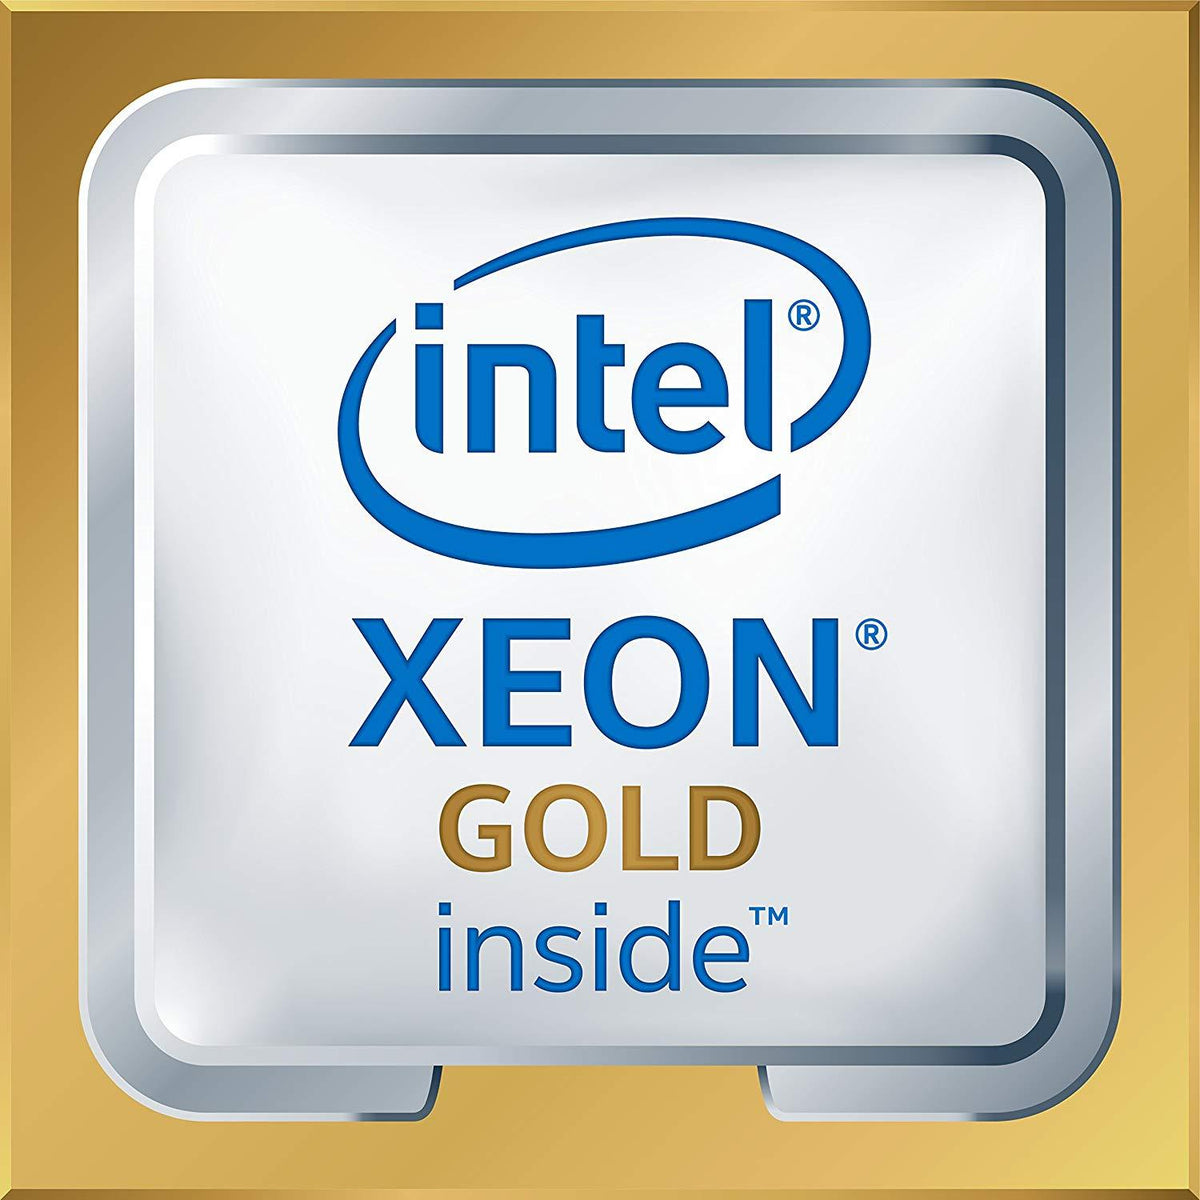 870734-B21 - HPE DL560 Gen10 Intel Xeon-Gold 6126 (2.6GHz/12-core/125W) Processor